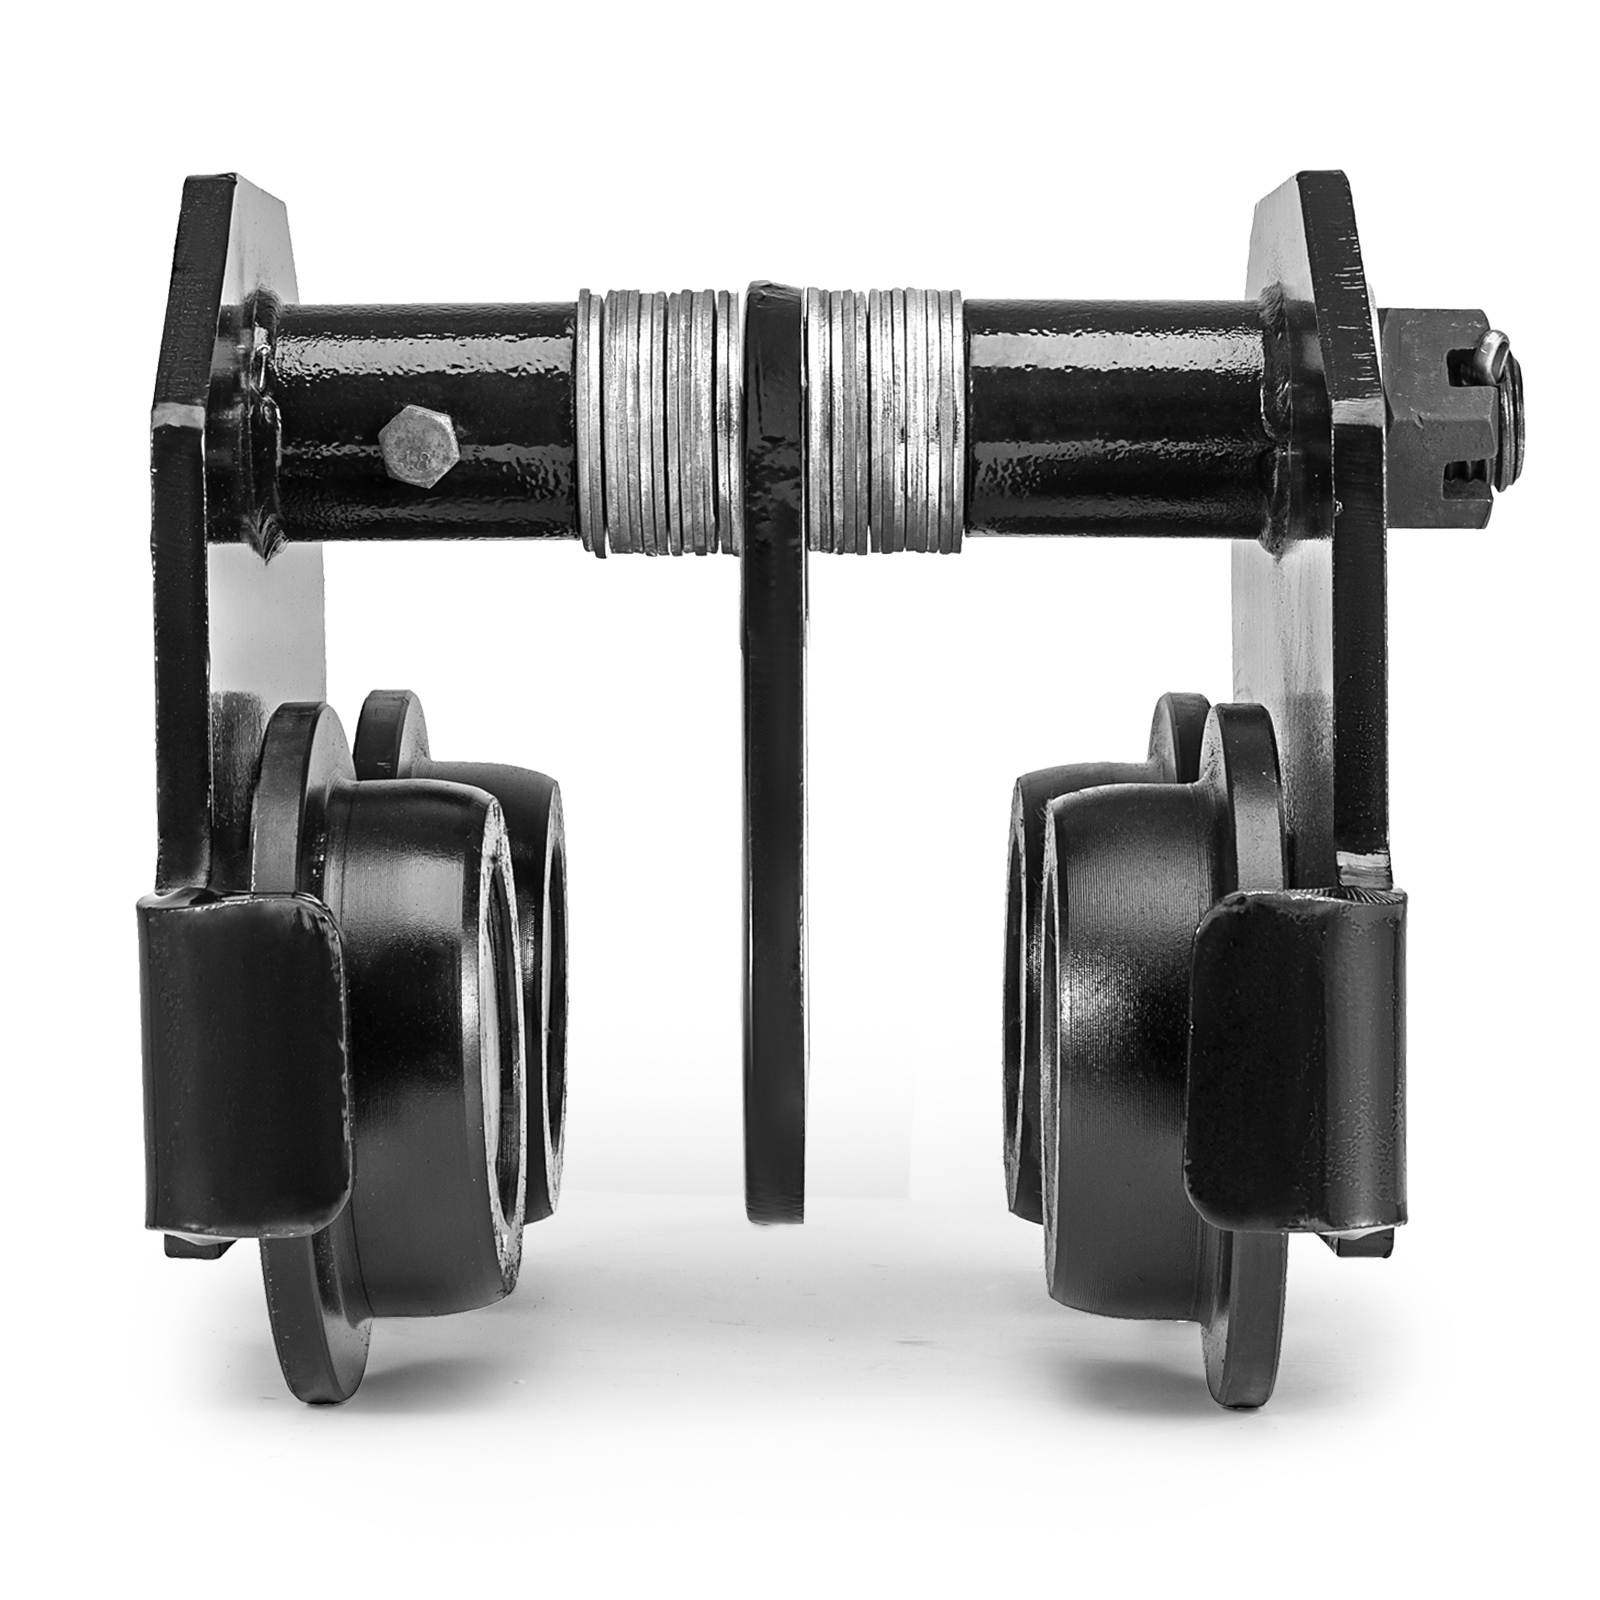 0-5T-2T-3T-Ton-Push-Beam-Trolley-For-Heavy-Loads-To-6600-Lb-Fits-Straight-I-Beam miniature 65